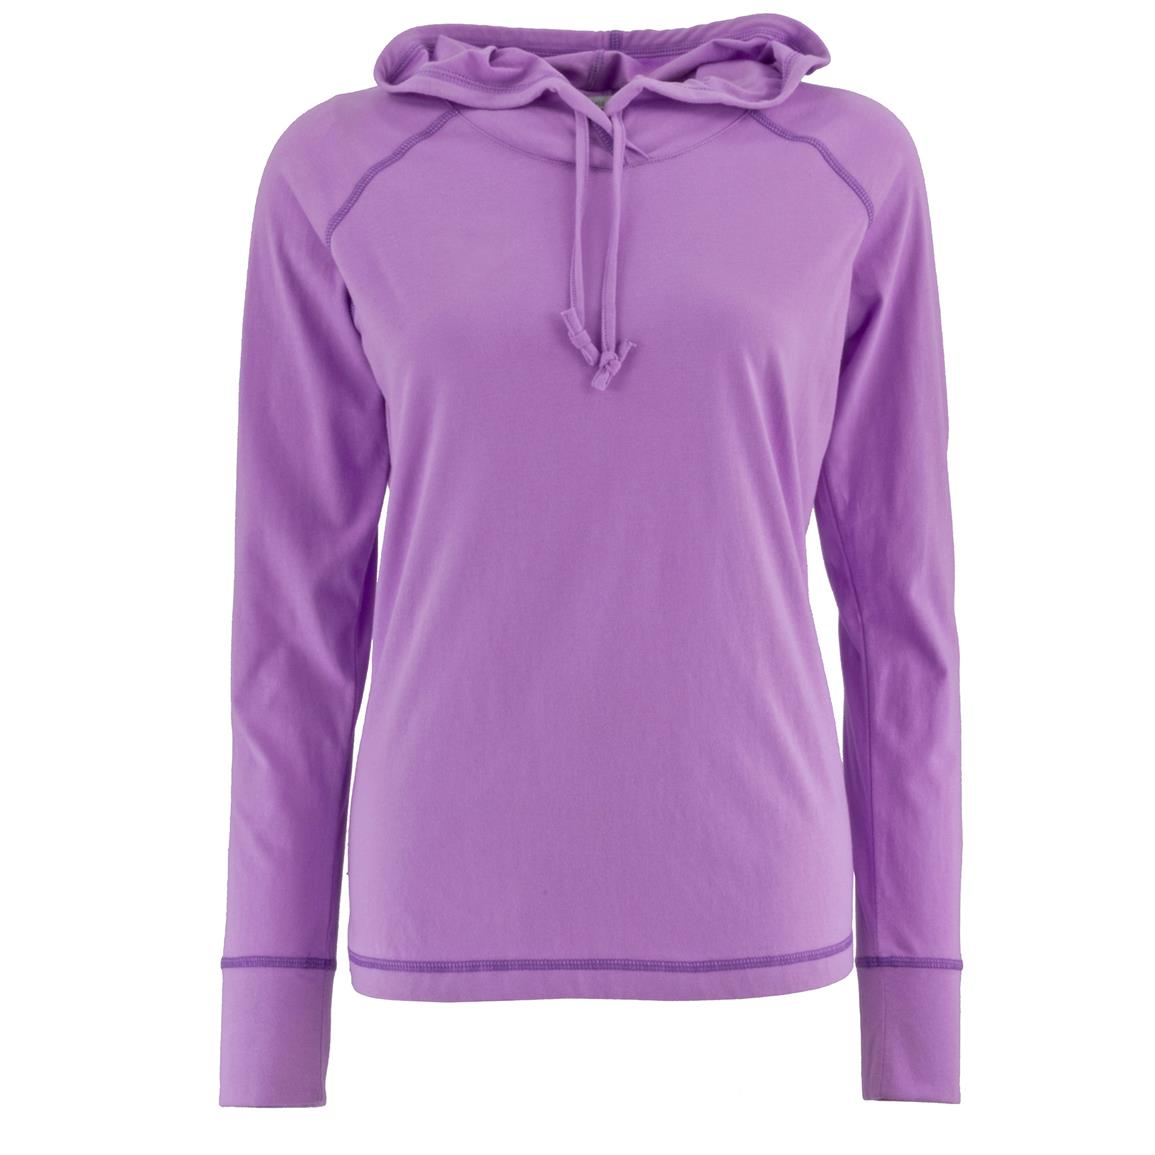 Women's Bug-free Pullover Hoodie, Permethrin, Lilac